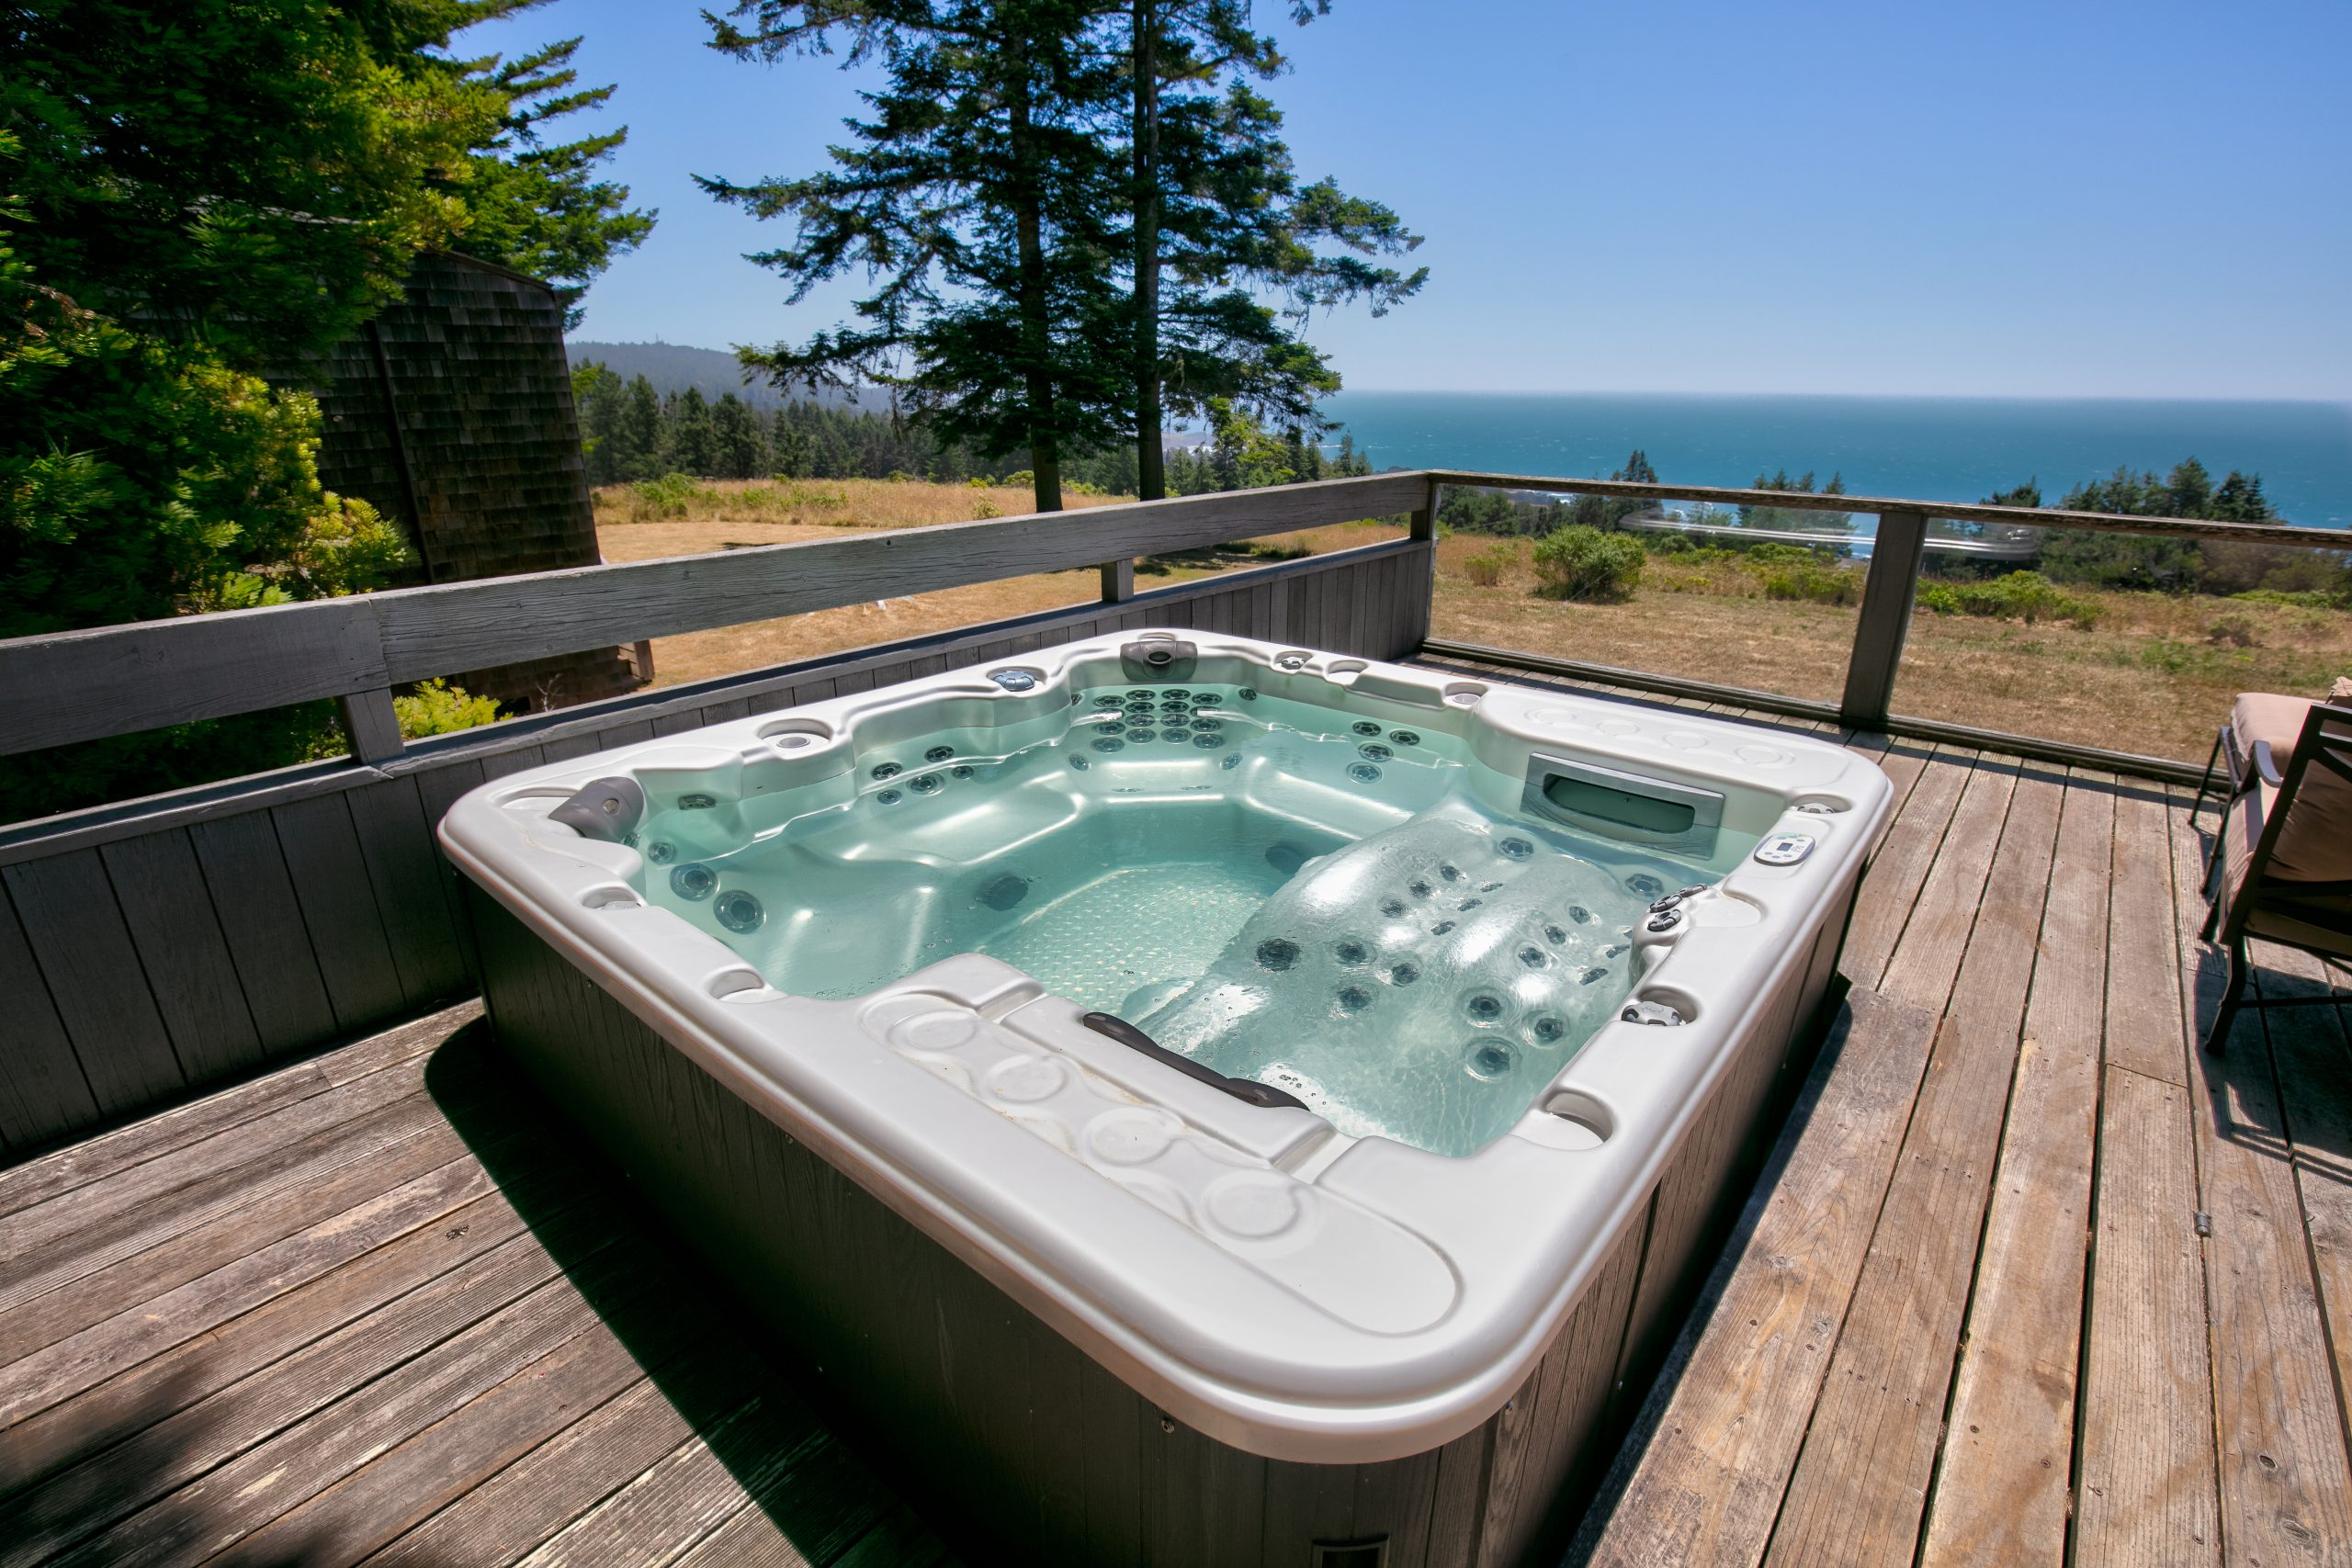 MOVE A HOT TUB LOCALLY